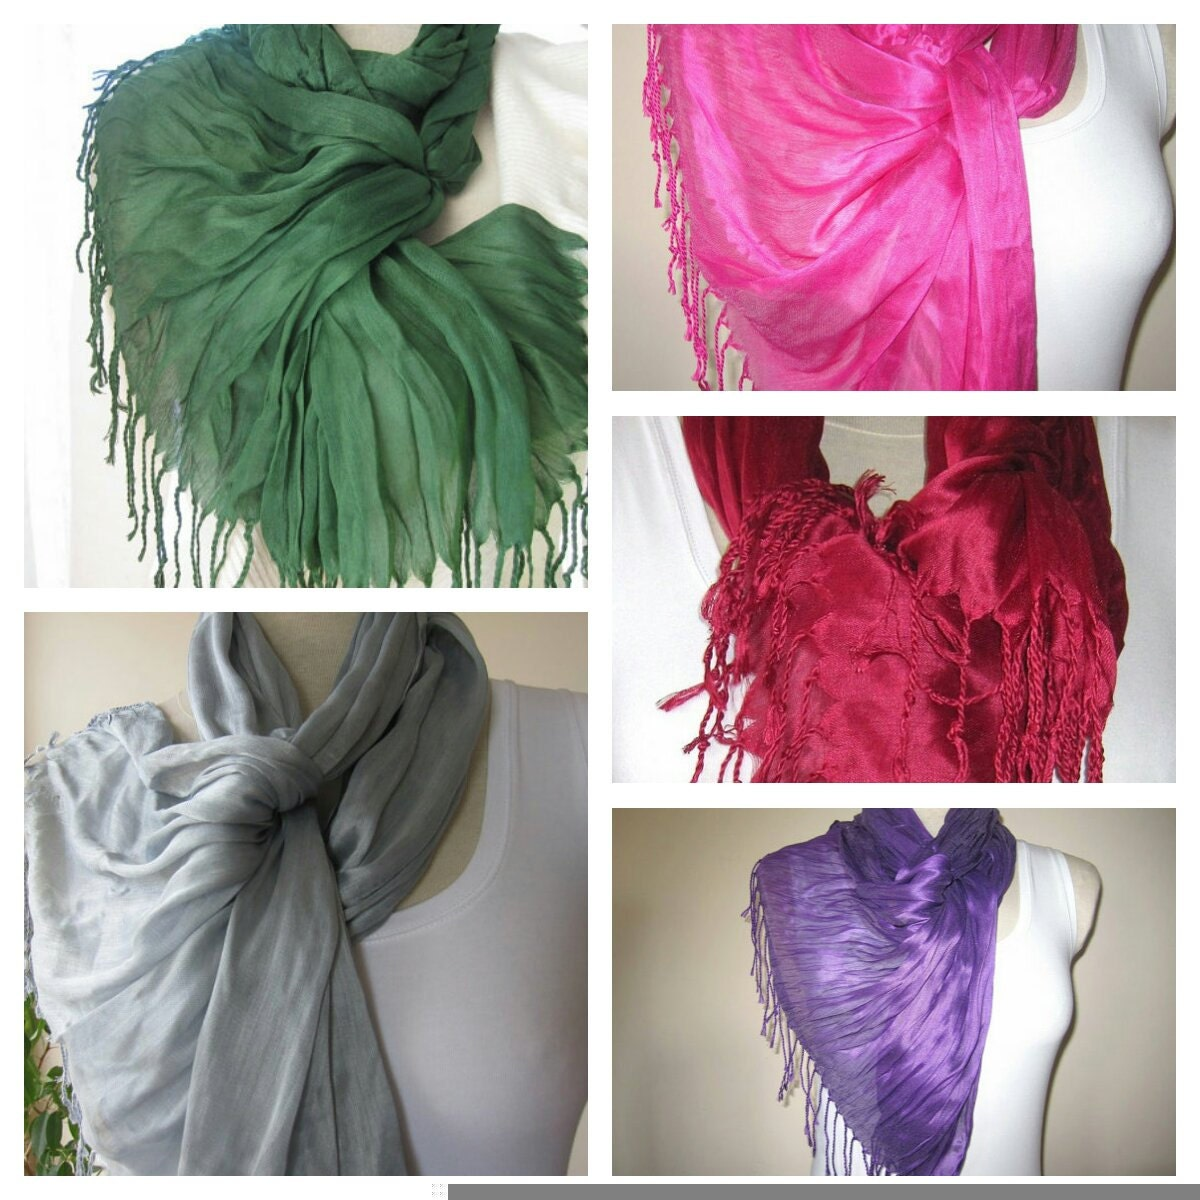 Colour Crush Emerald Green With Pink: Turkey Emerald Green Scarfburgundy Hot Pink Gray Purple Solid